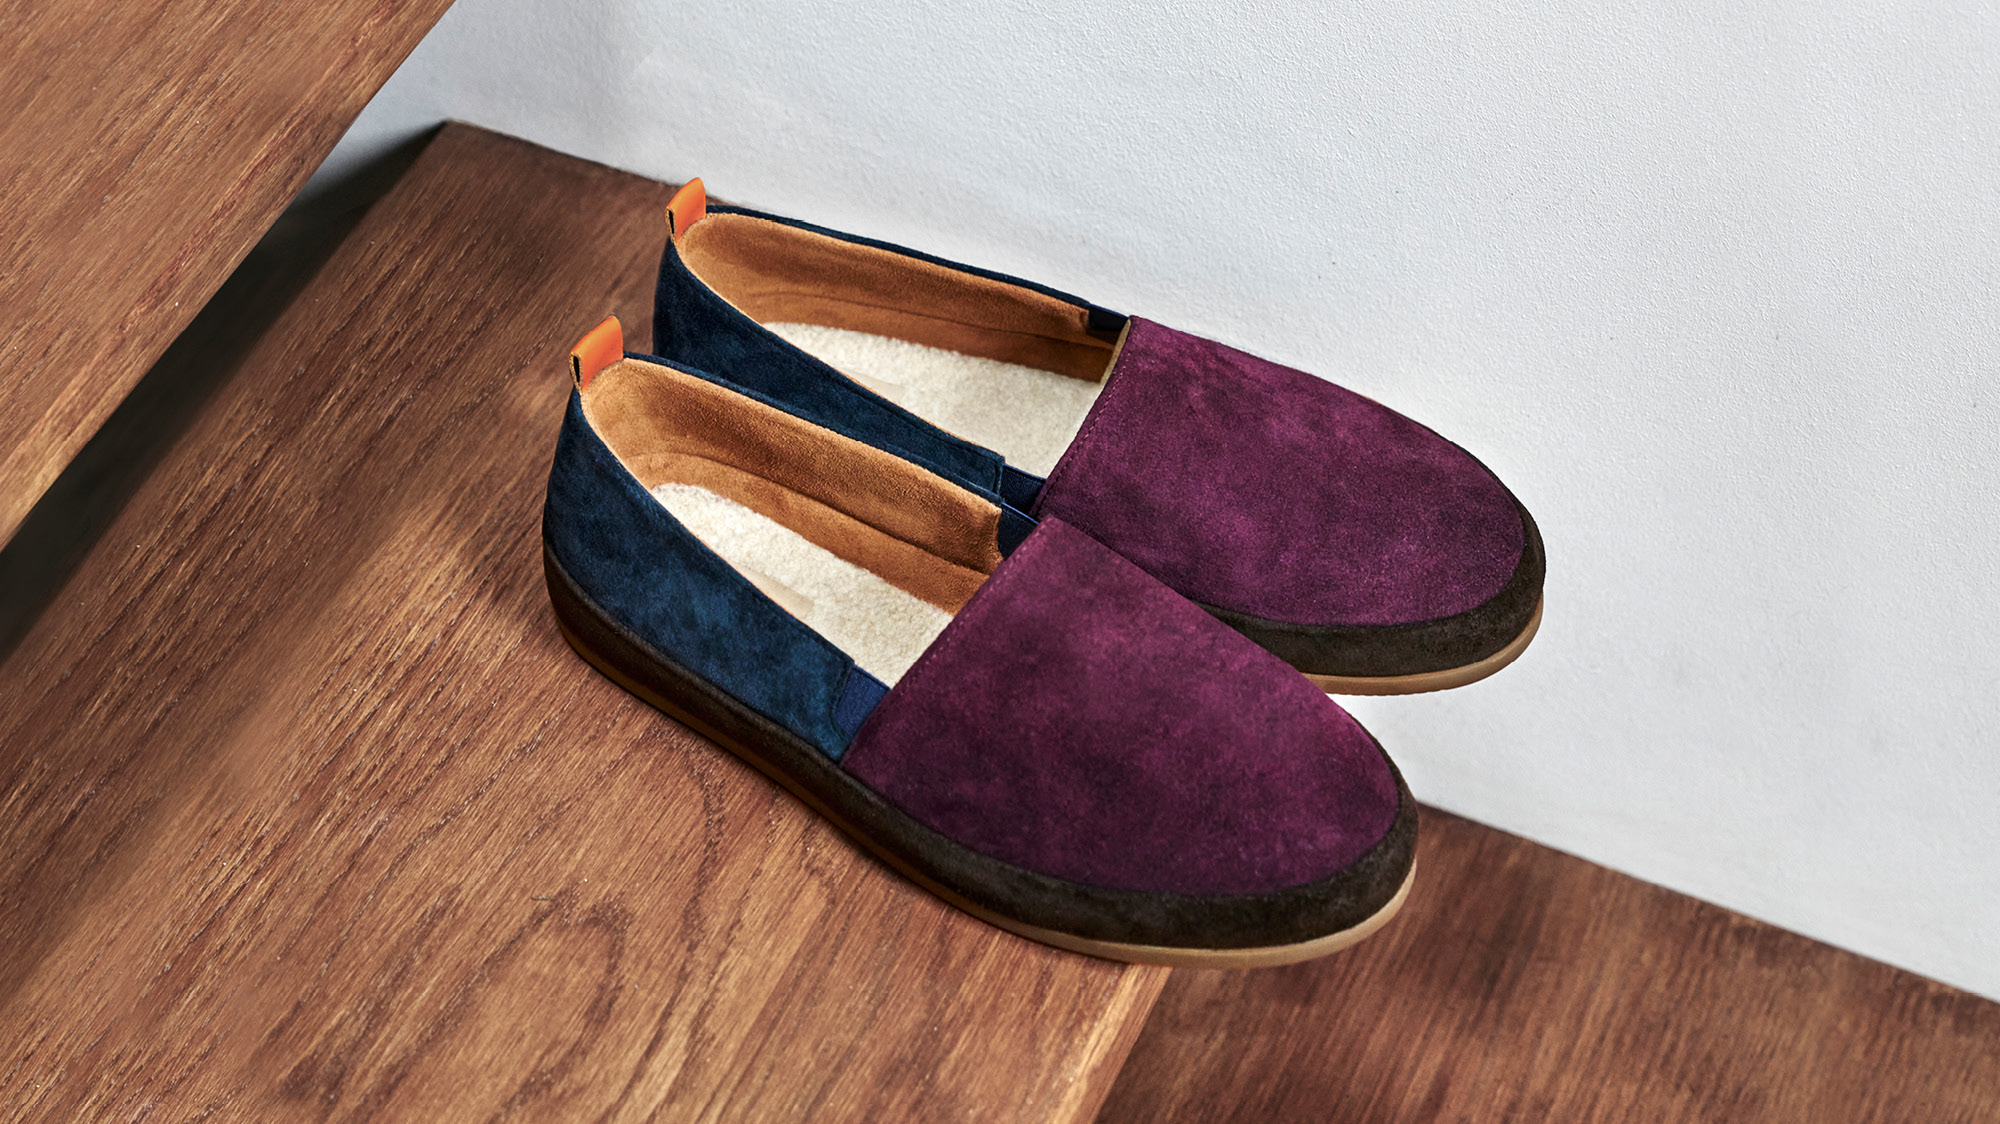 Limited Edition Slippers - Color-blocked Suede Slippers for Men